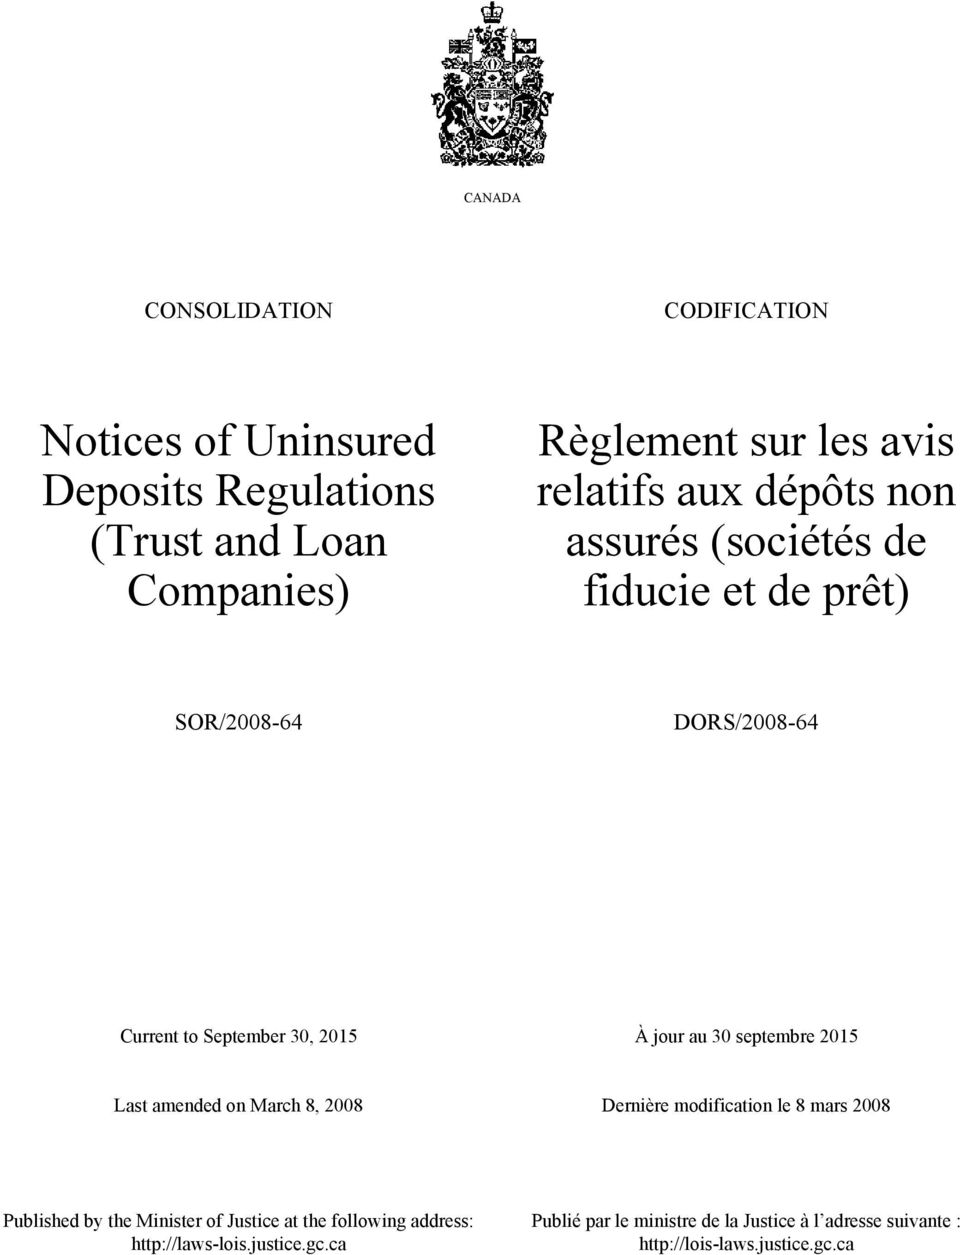 30 septembre 2015 Last amended on March 8, 2008 Dernière modification le 8 mars 2008 Published by the Minister of Justice at the